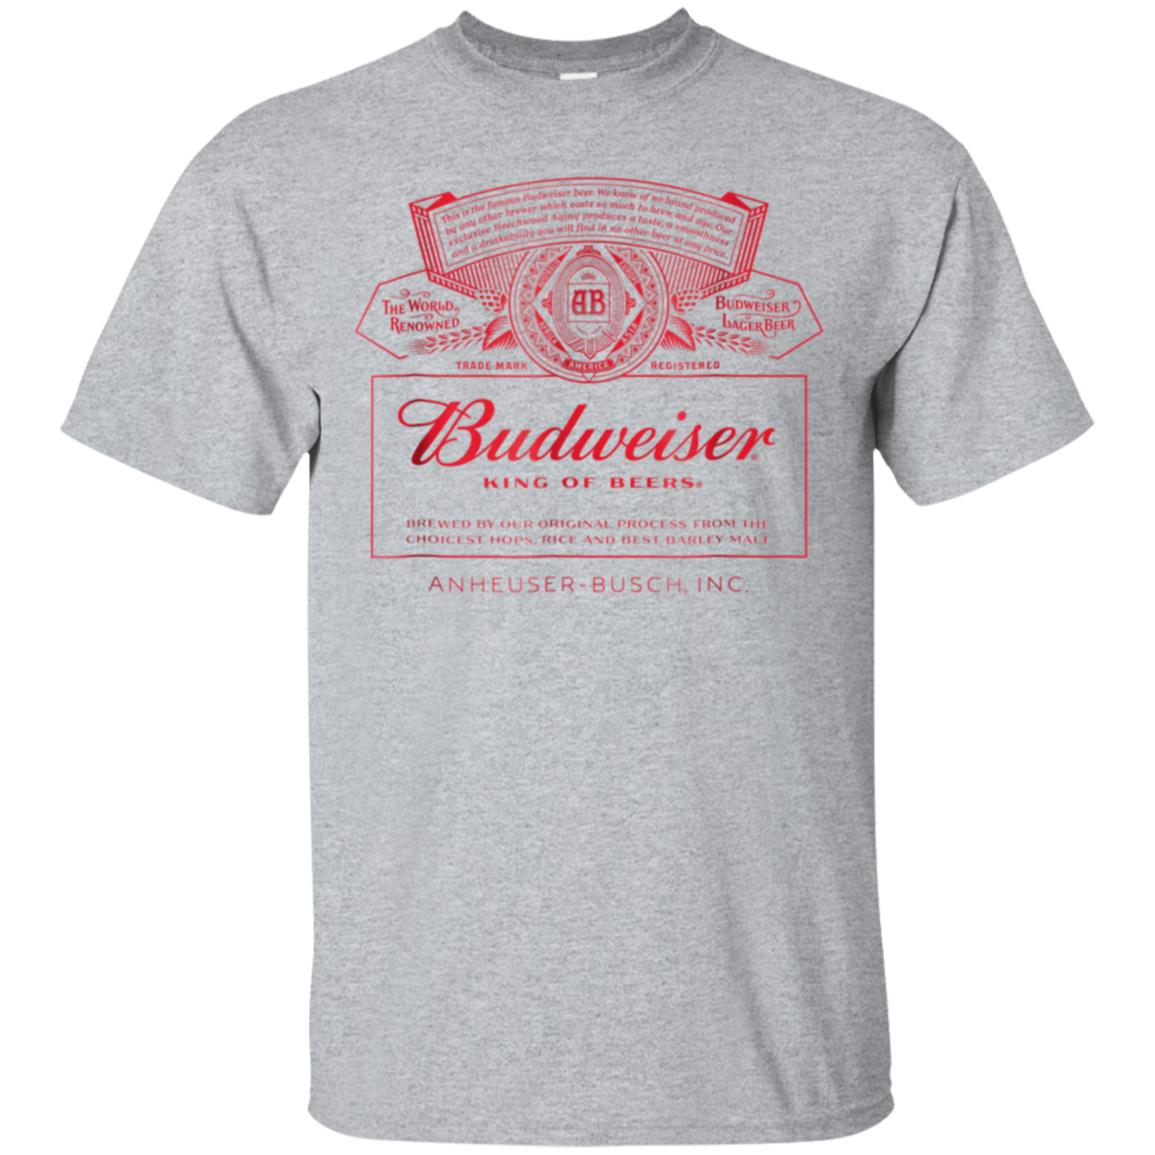 Budweiser Can Label T-Shirt 99promocode